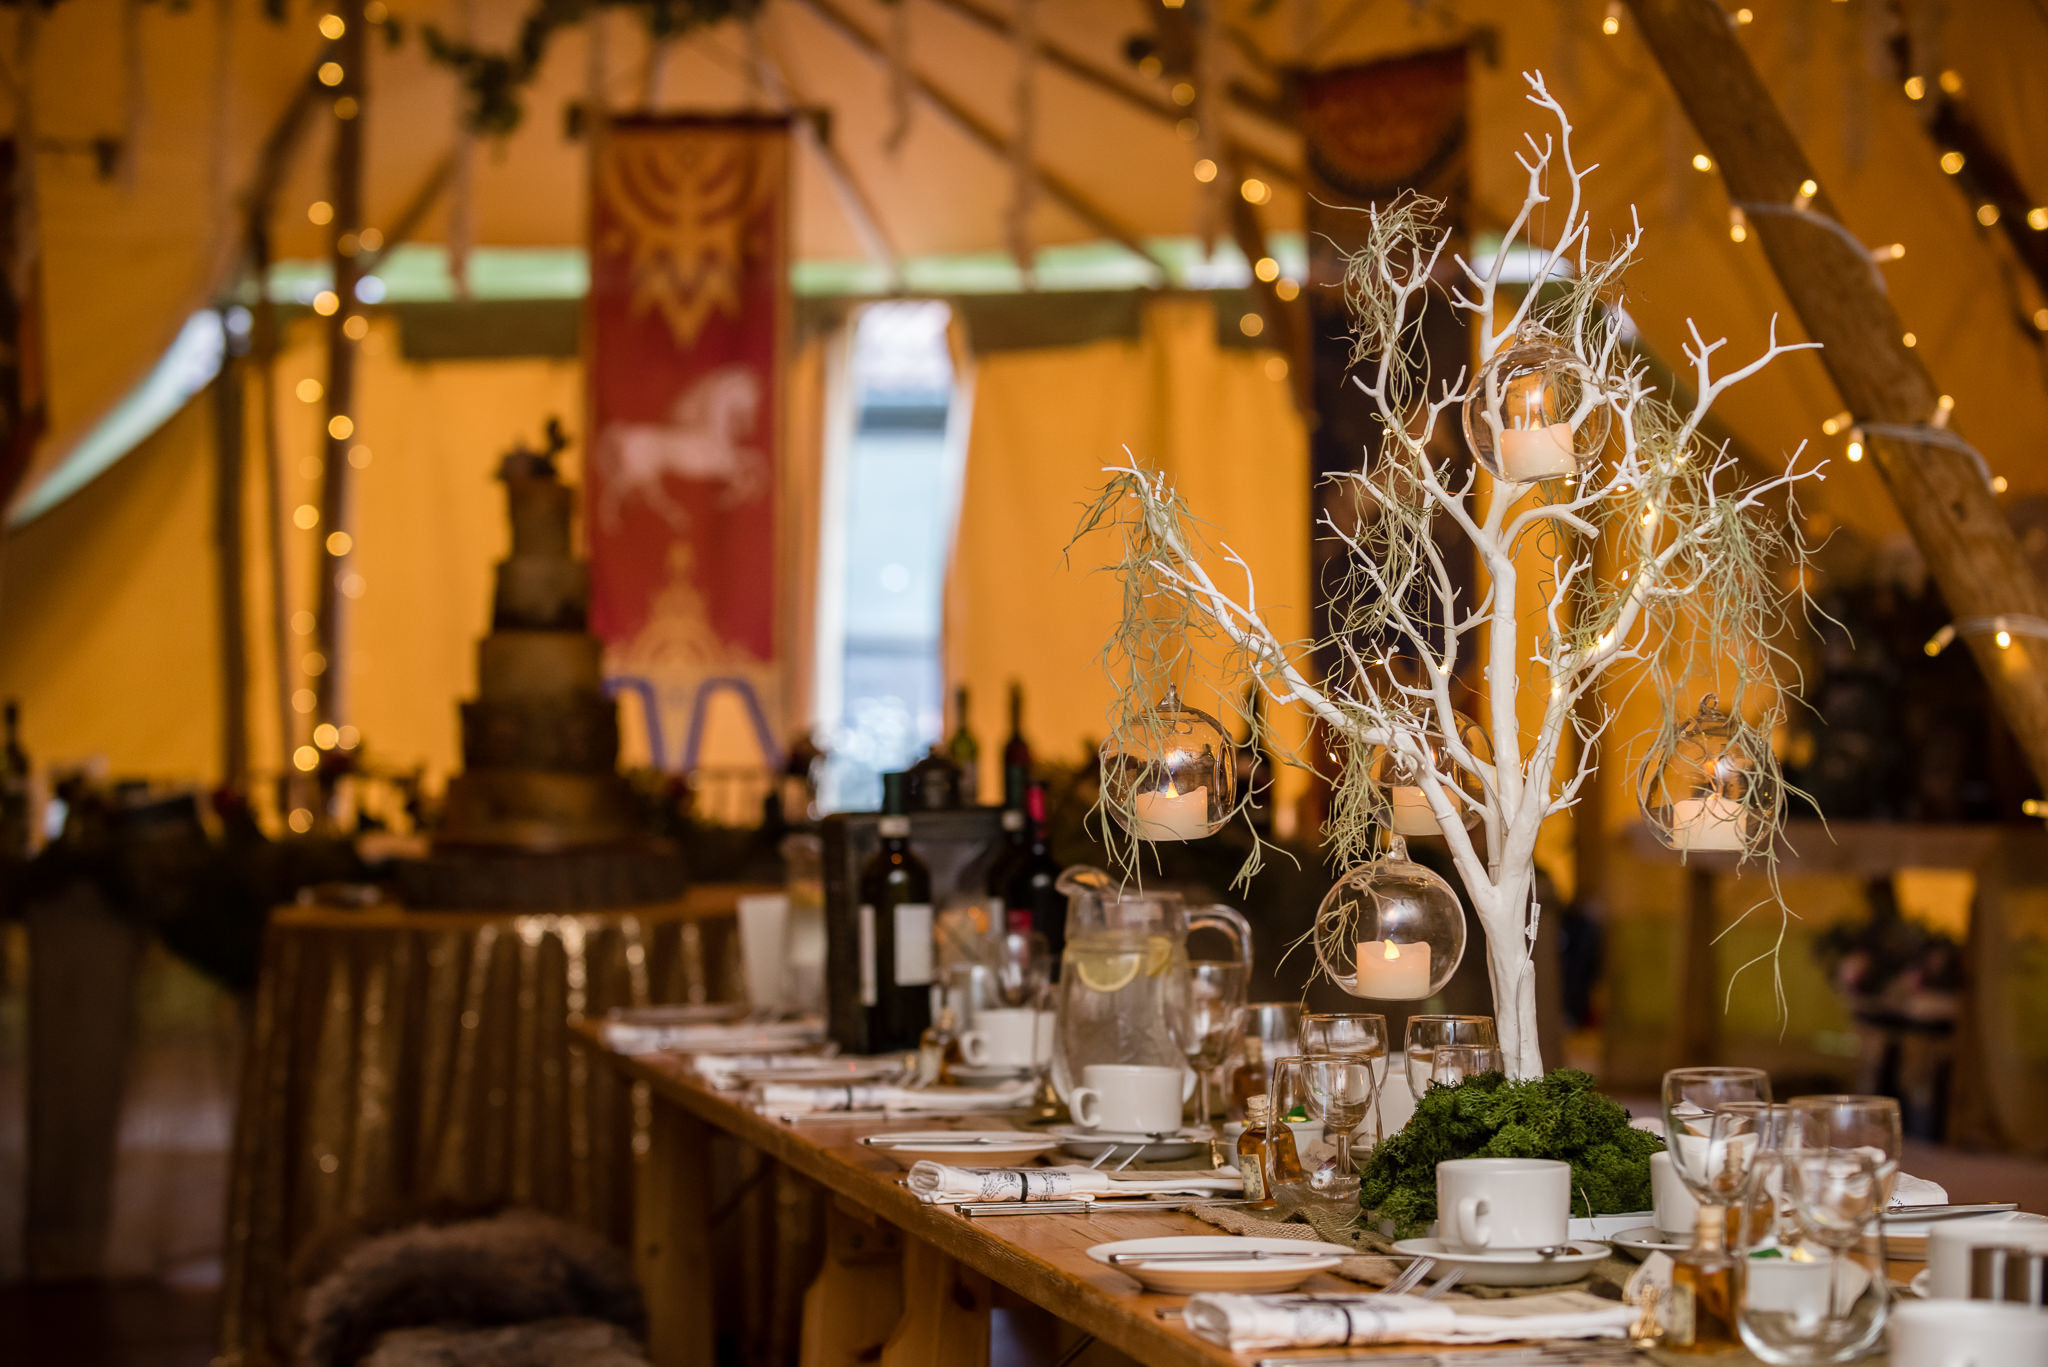 Inside the tipi for a Lord of the Rings themed wedding